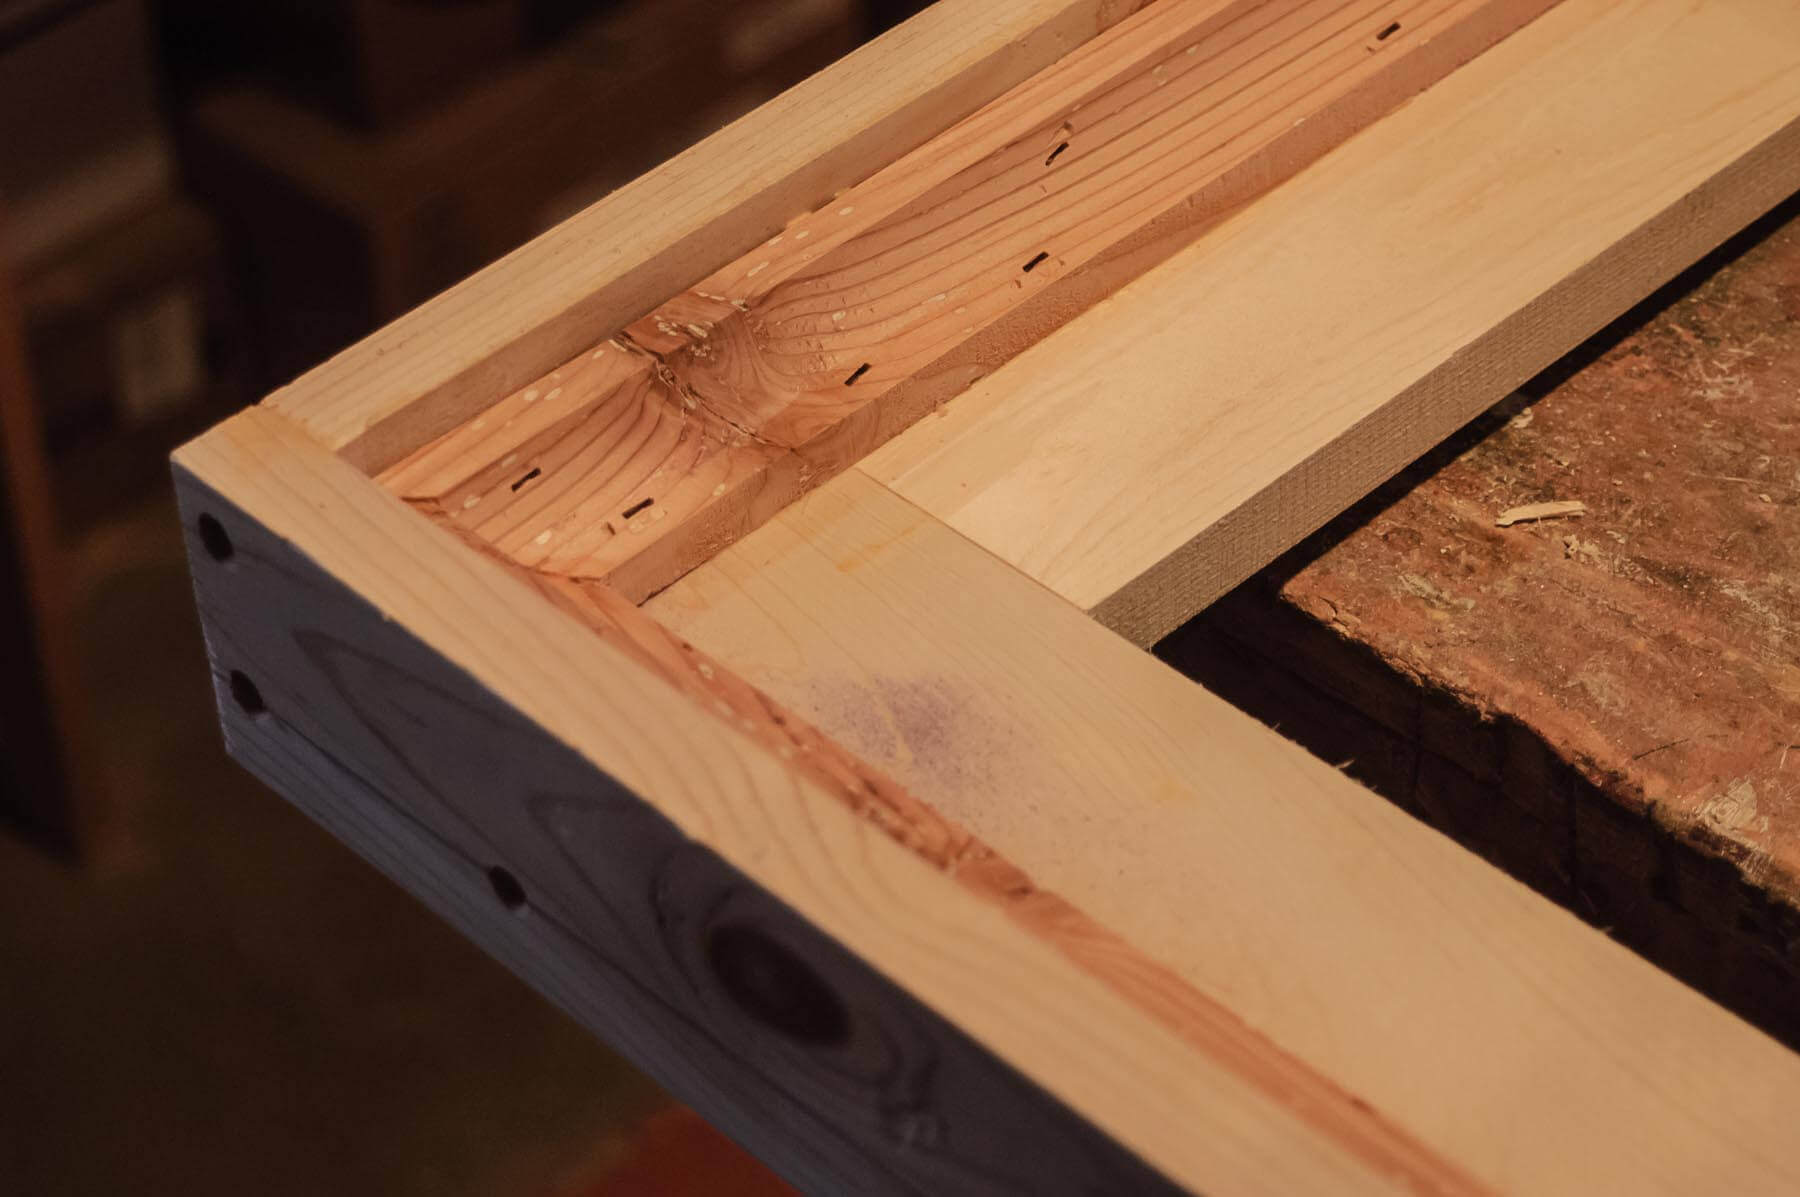 Using weathered wood, an early step in the design process was to fabricate a sample of the moulding ...